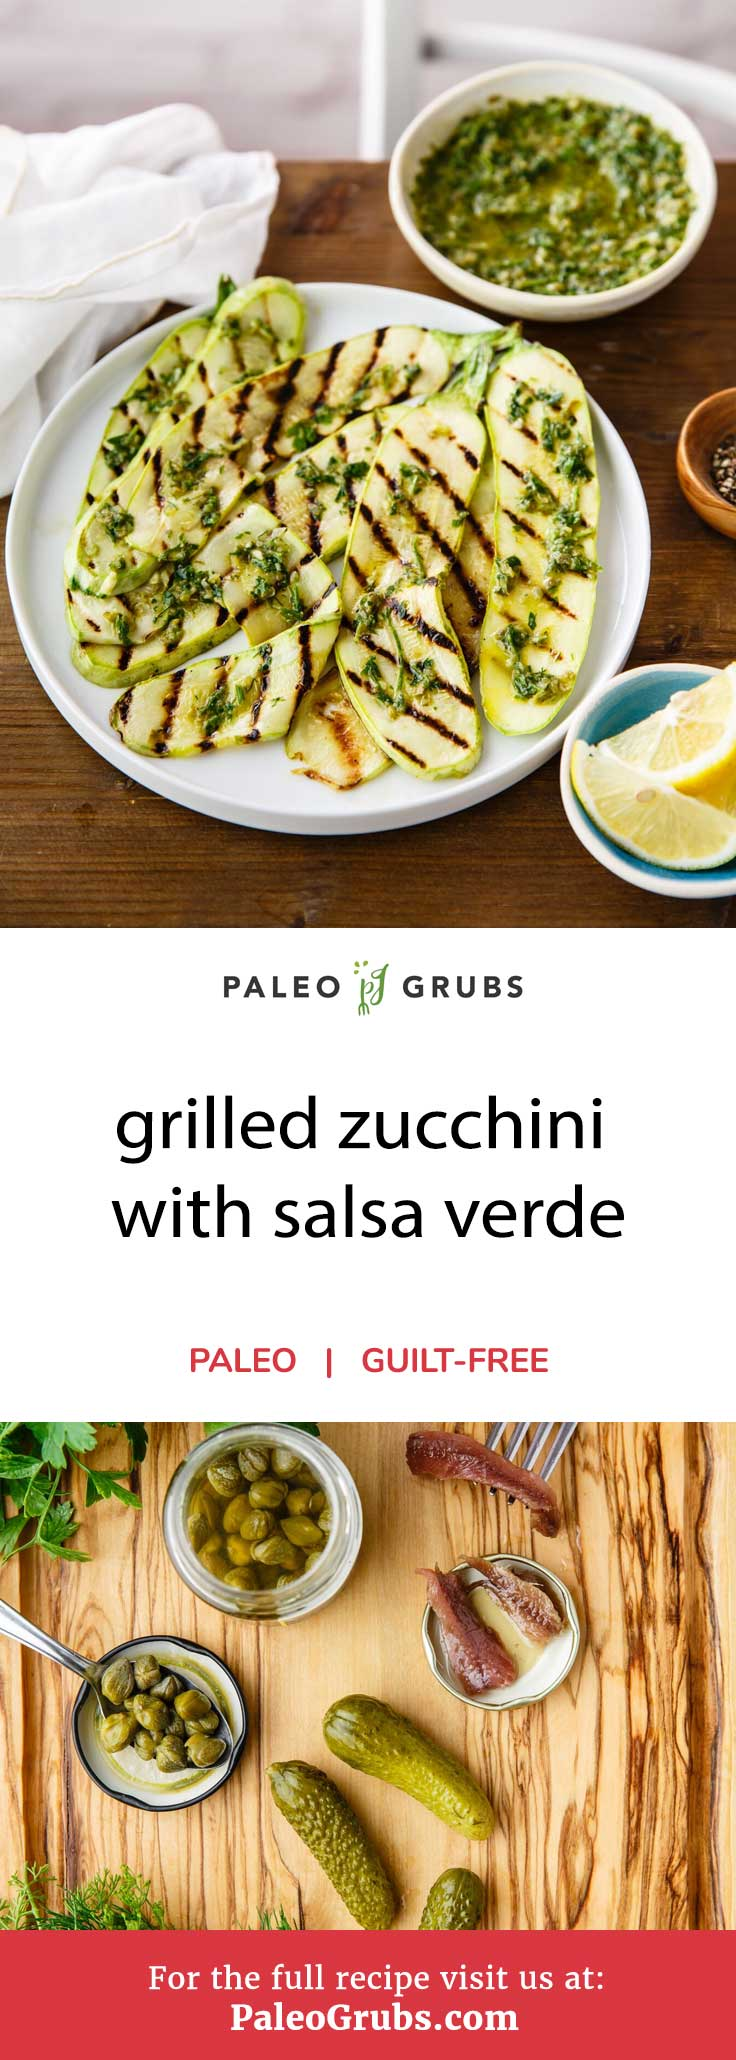 As much as I love to eat zucchini raw, there's definitely something to be said for cooking it. When you grill zucchini, I find it really brings the taste of this vegetable out while giving it a nice, crispy bite. This grilled zucchini with salsa verde is definitely proof of that. The homemade paleo-friendly salsa verde sauce is full of flavors thanks to the great ingredients used, including garlic, capers, anchovy fillets, parsley, dill, lemon juice, cornichons, and dijon mustard.